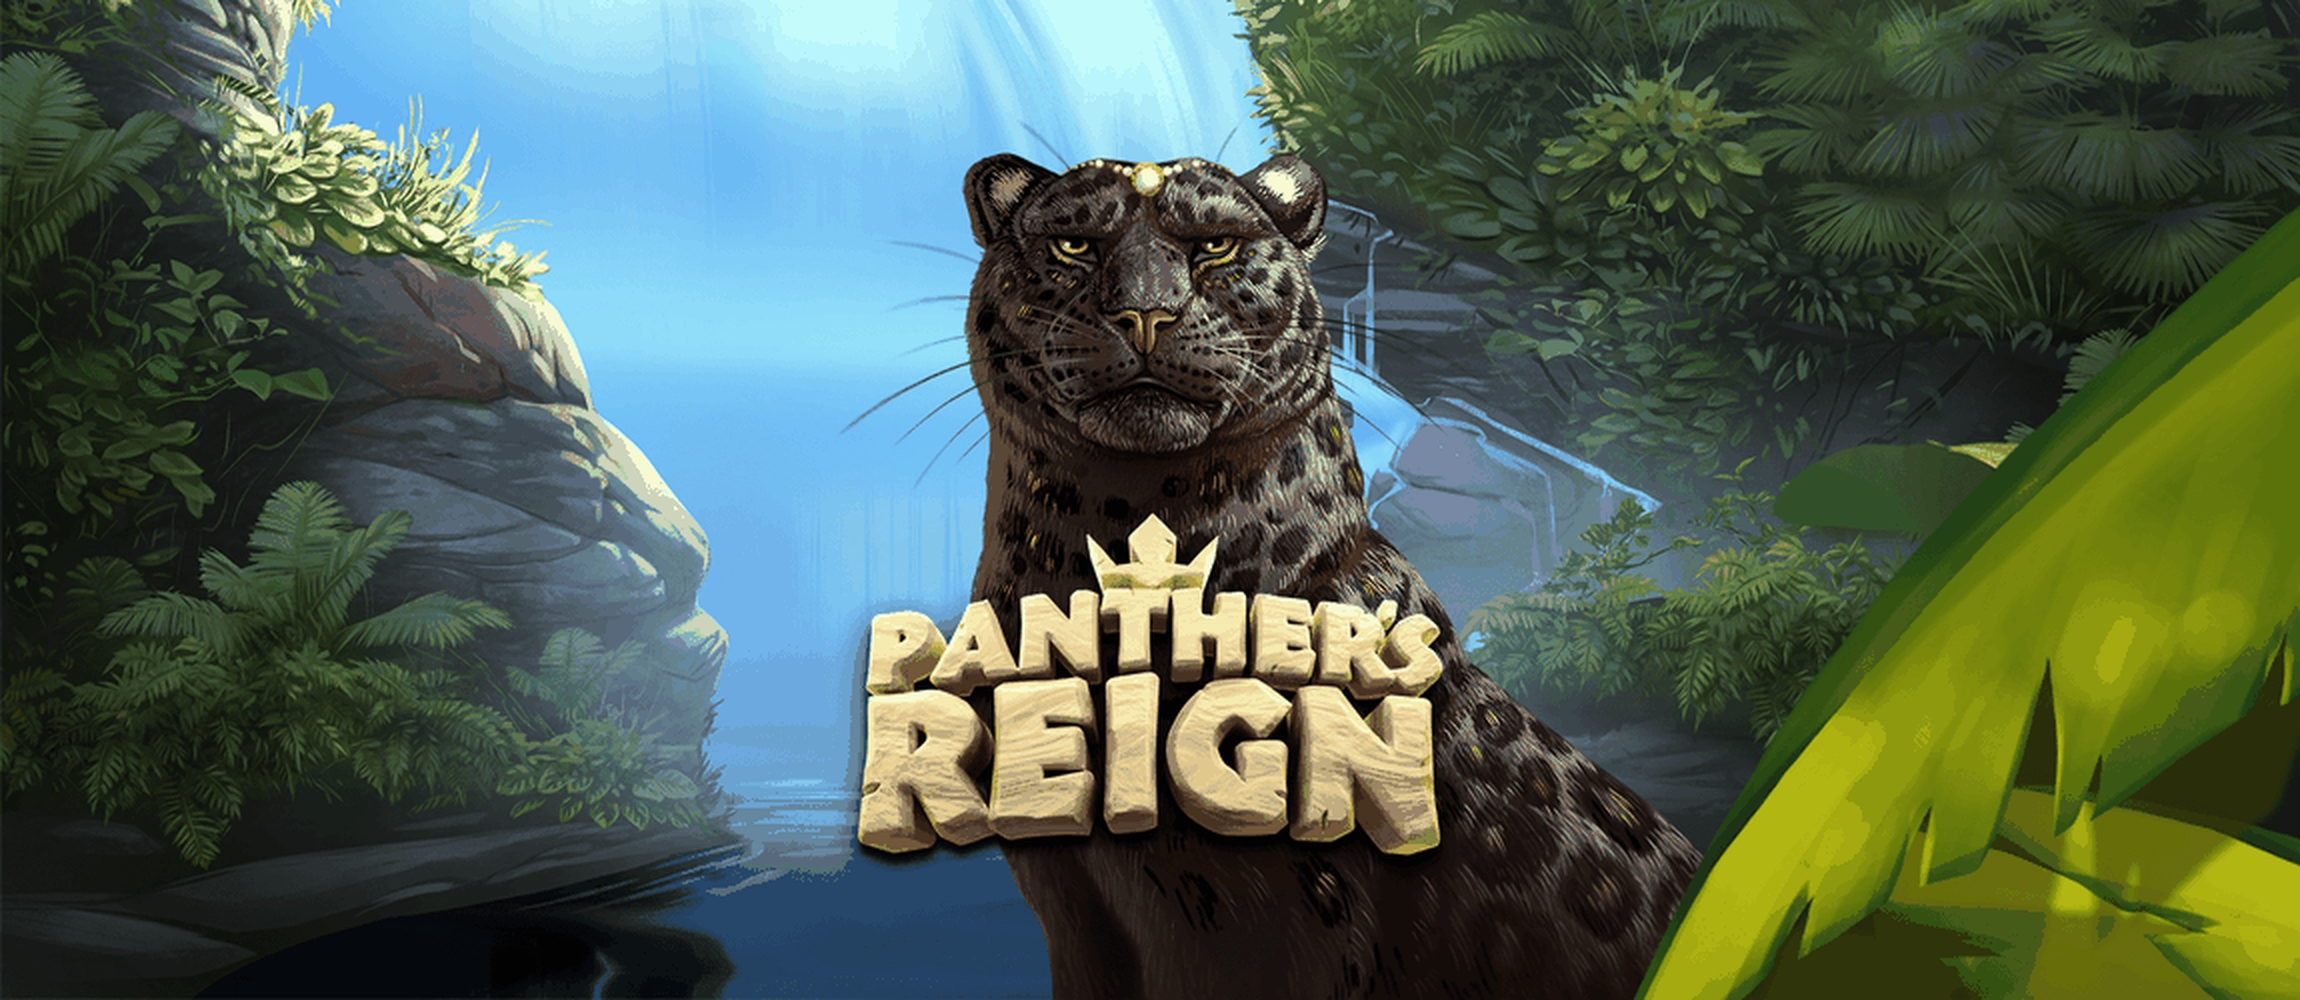 The Panthers Reign Online Slot Demo Game by Quickspin